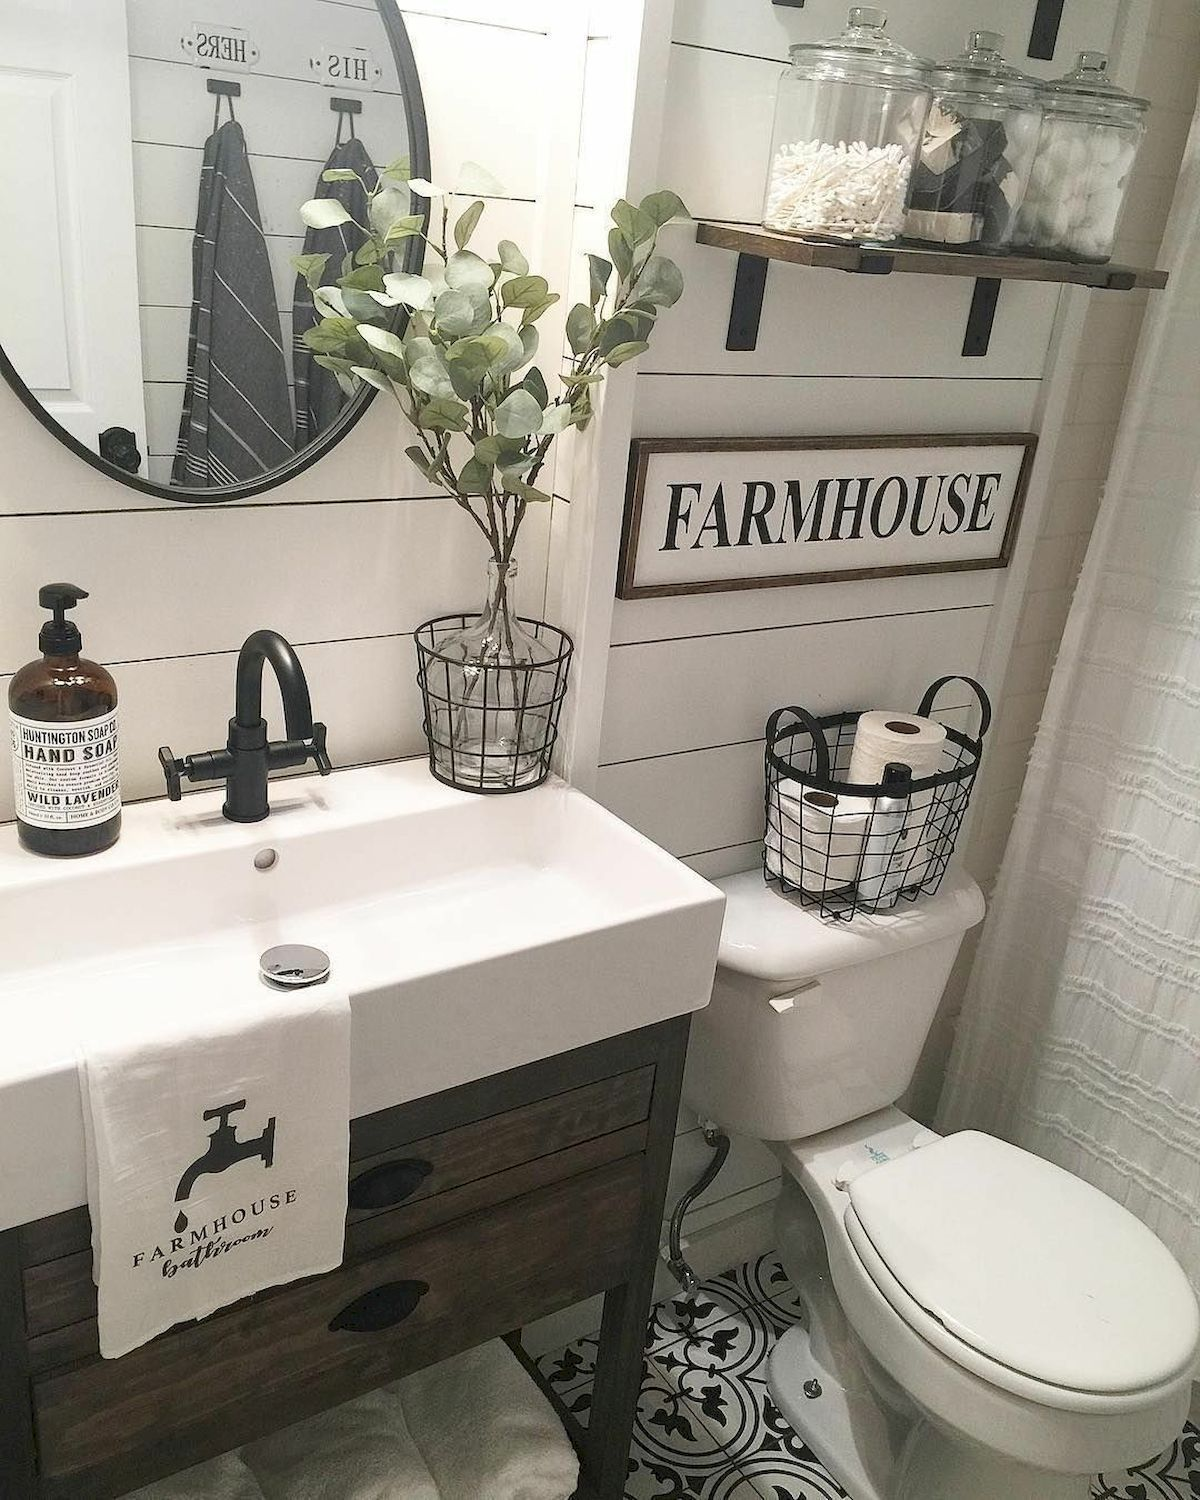 You Are Likely To Require A Fitting Bathroom Package For Your House Irrespective Modern Farmhouse Bathroom Farmhouse Bathroom Vanity Farmhouse Bathroom Decor